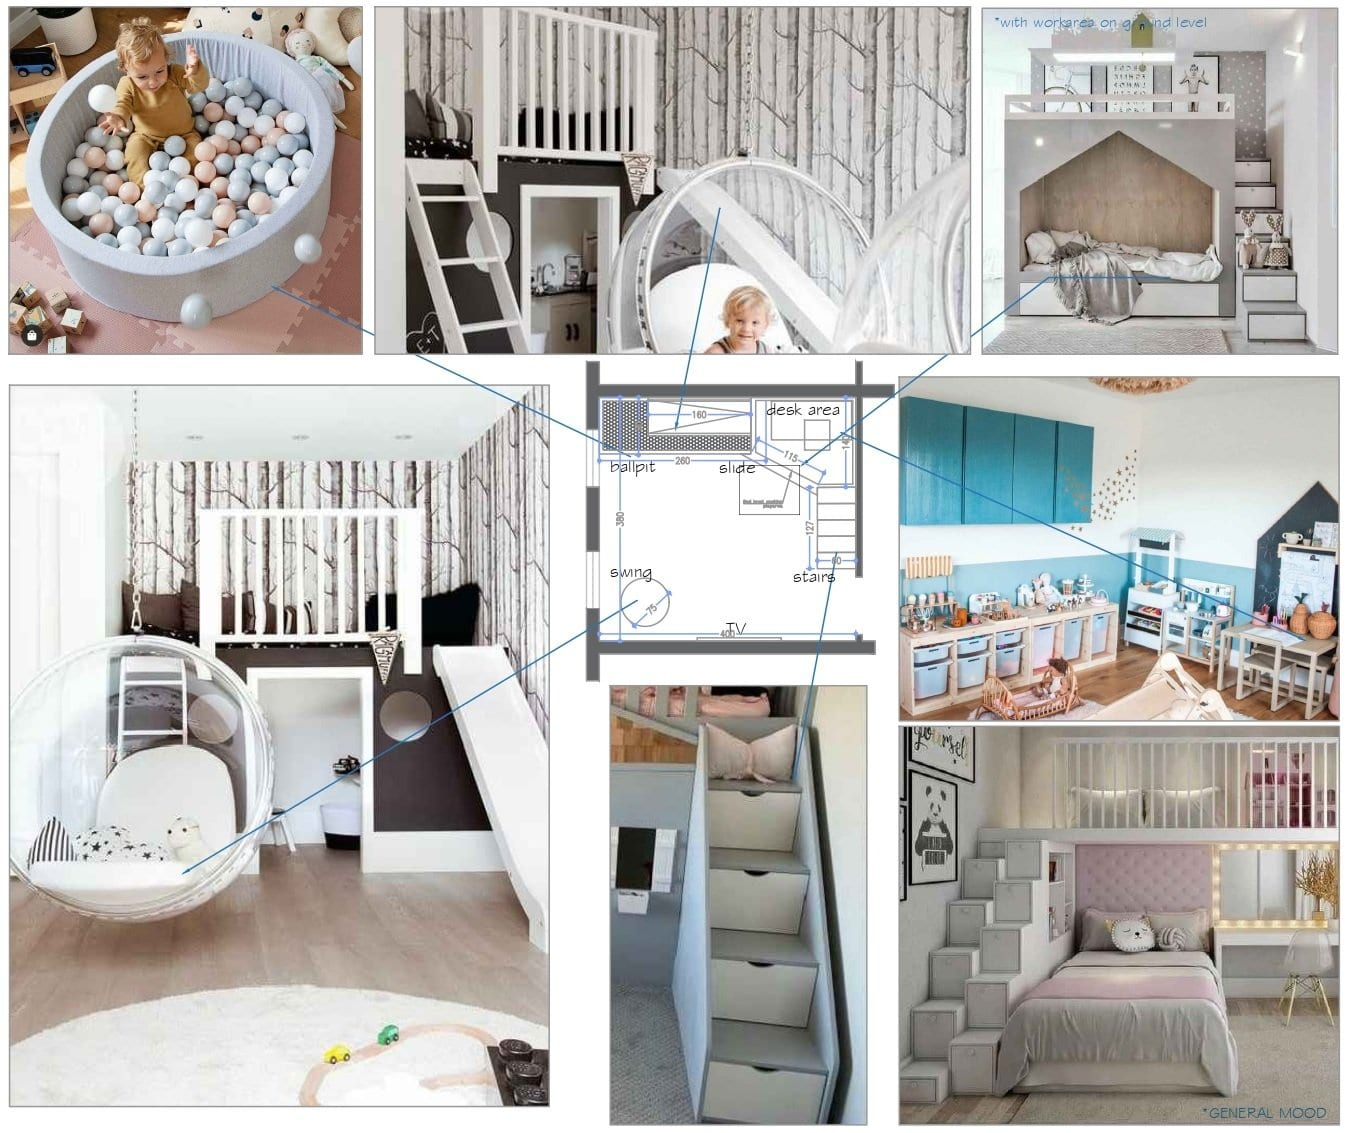 Style ideas for interior design at Moon Kids Home